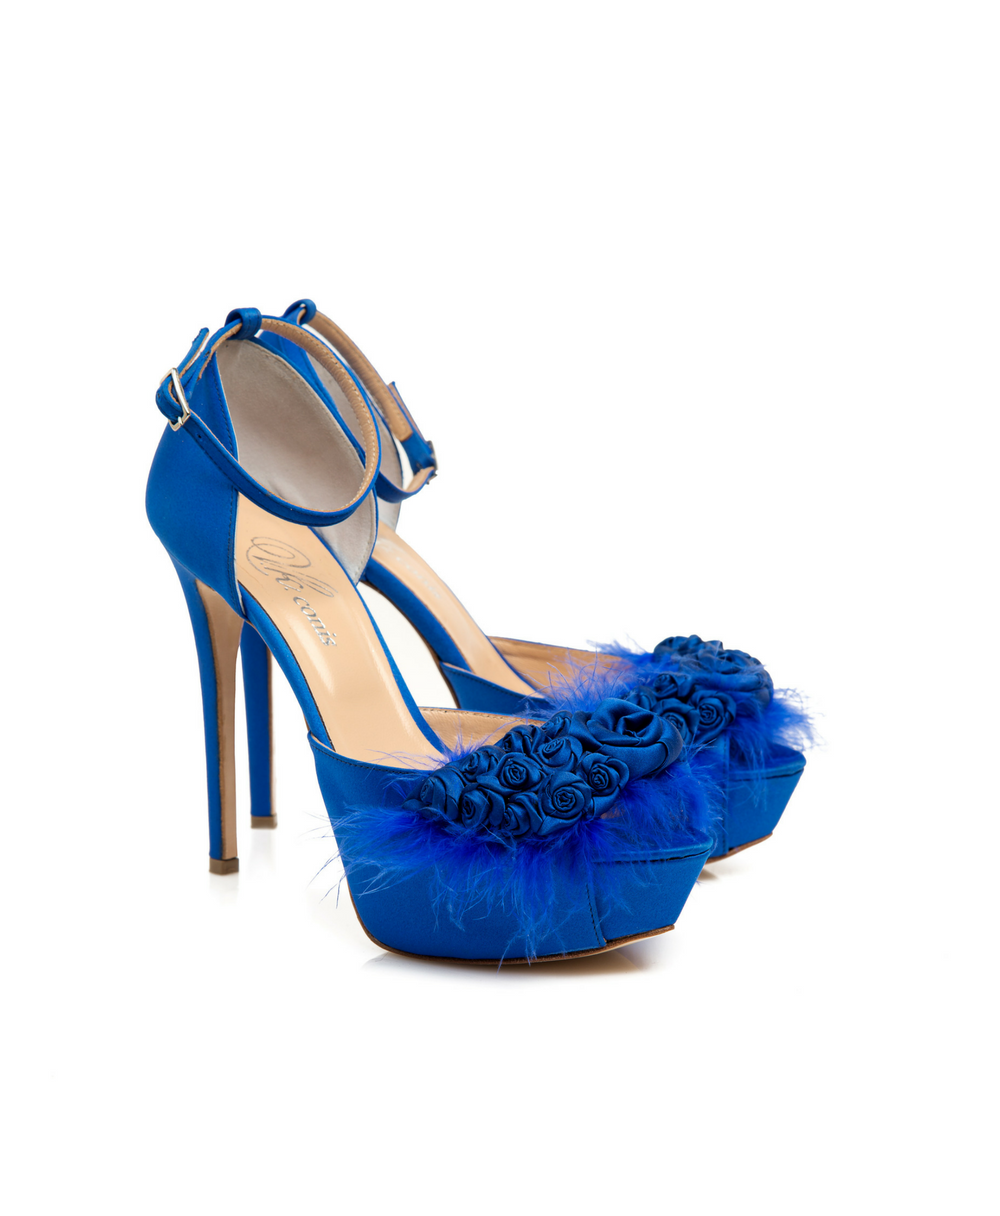 ... Bridal Ankle Strap d Orsay With Handmade Silk Roses Blue Royal Satin  Mod.2346. Zoom 69db1a2c3ed